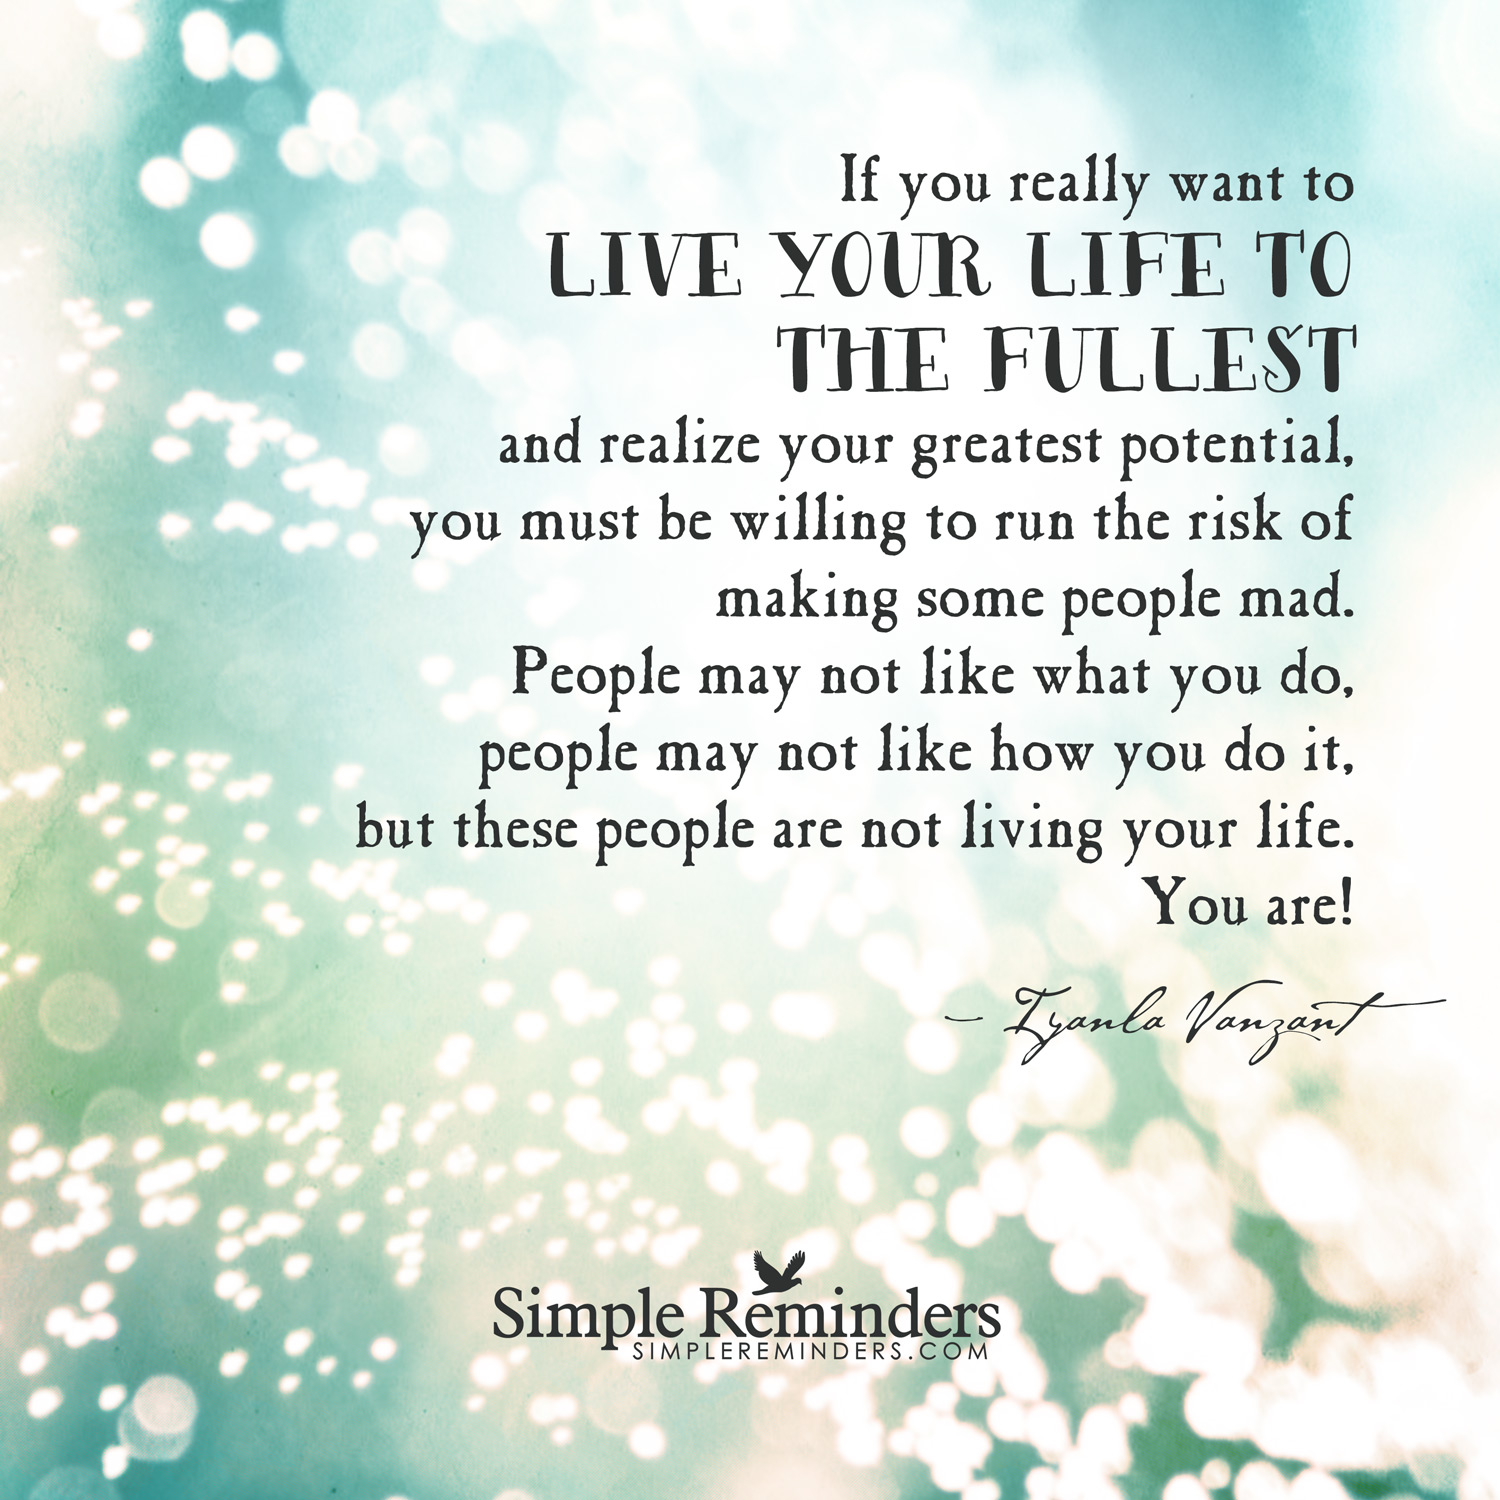 Live Life To The Fullest Quotes Quotes About Live Life To Its Fullest 17 Quotes